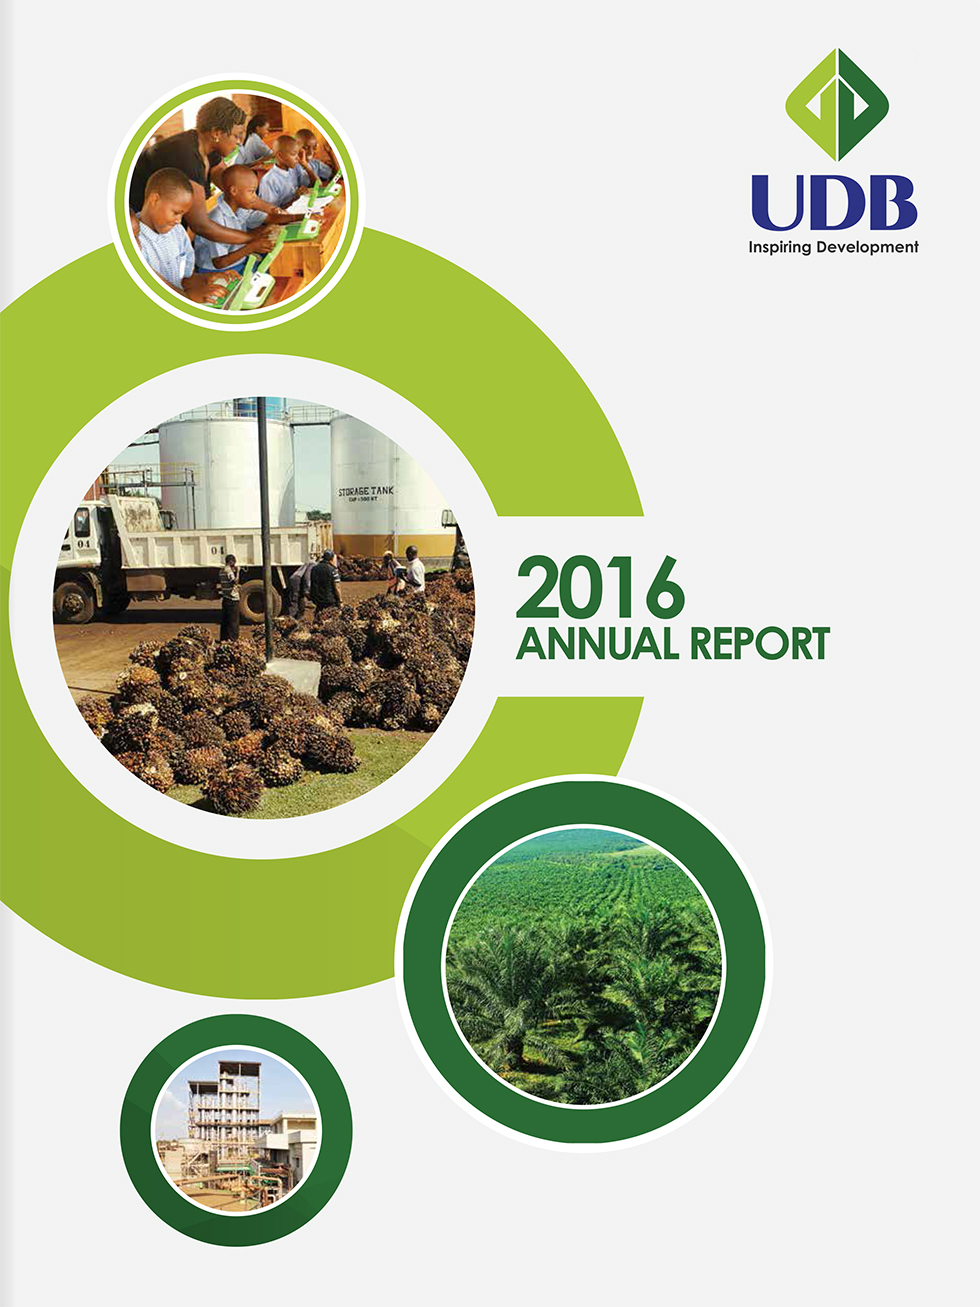 UDB-ANNUAL-REPORT-2016-1